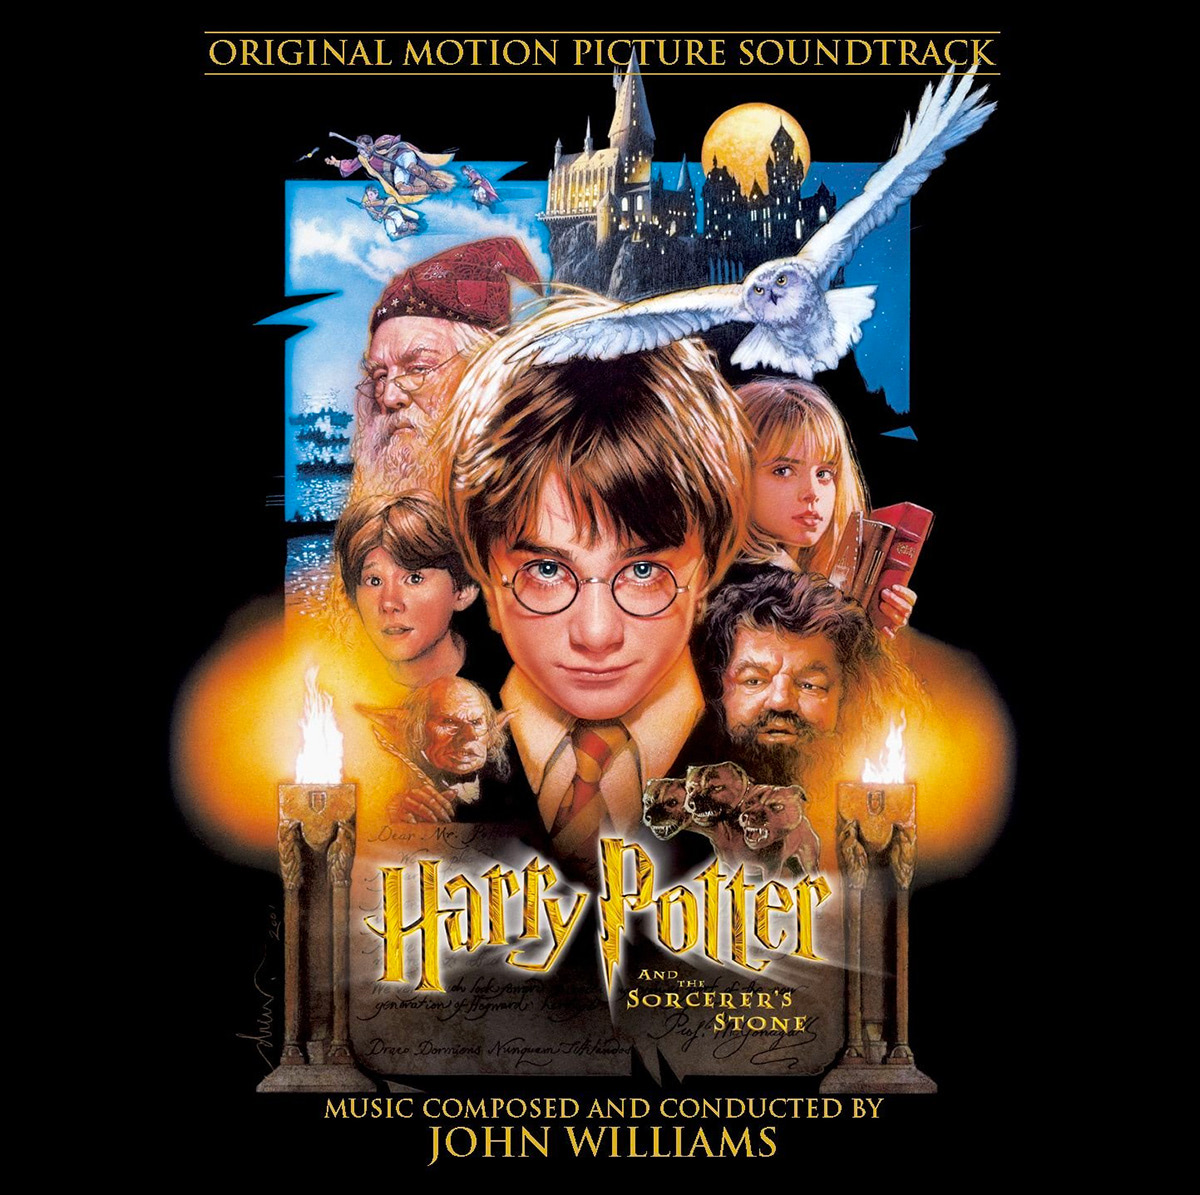 'Philosophers's Stone' soundtrack